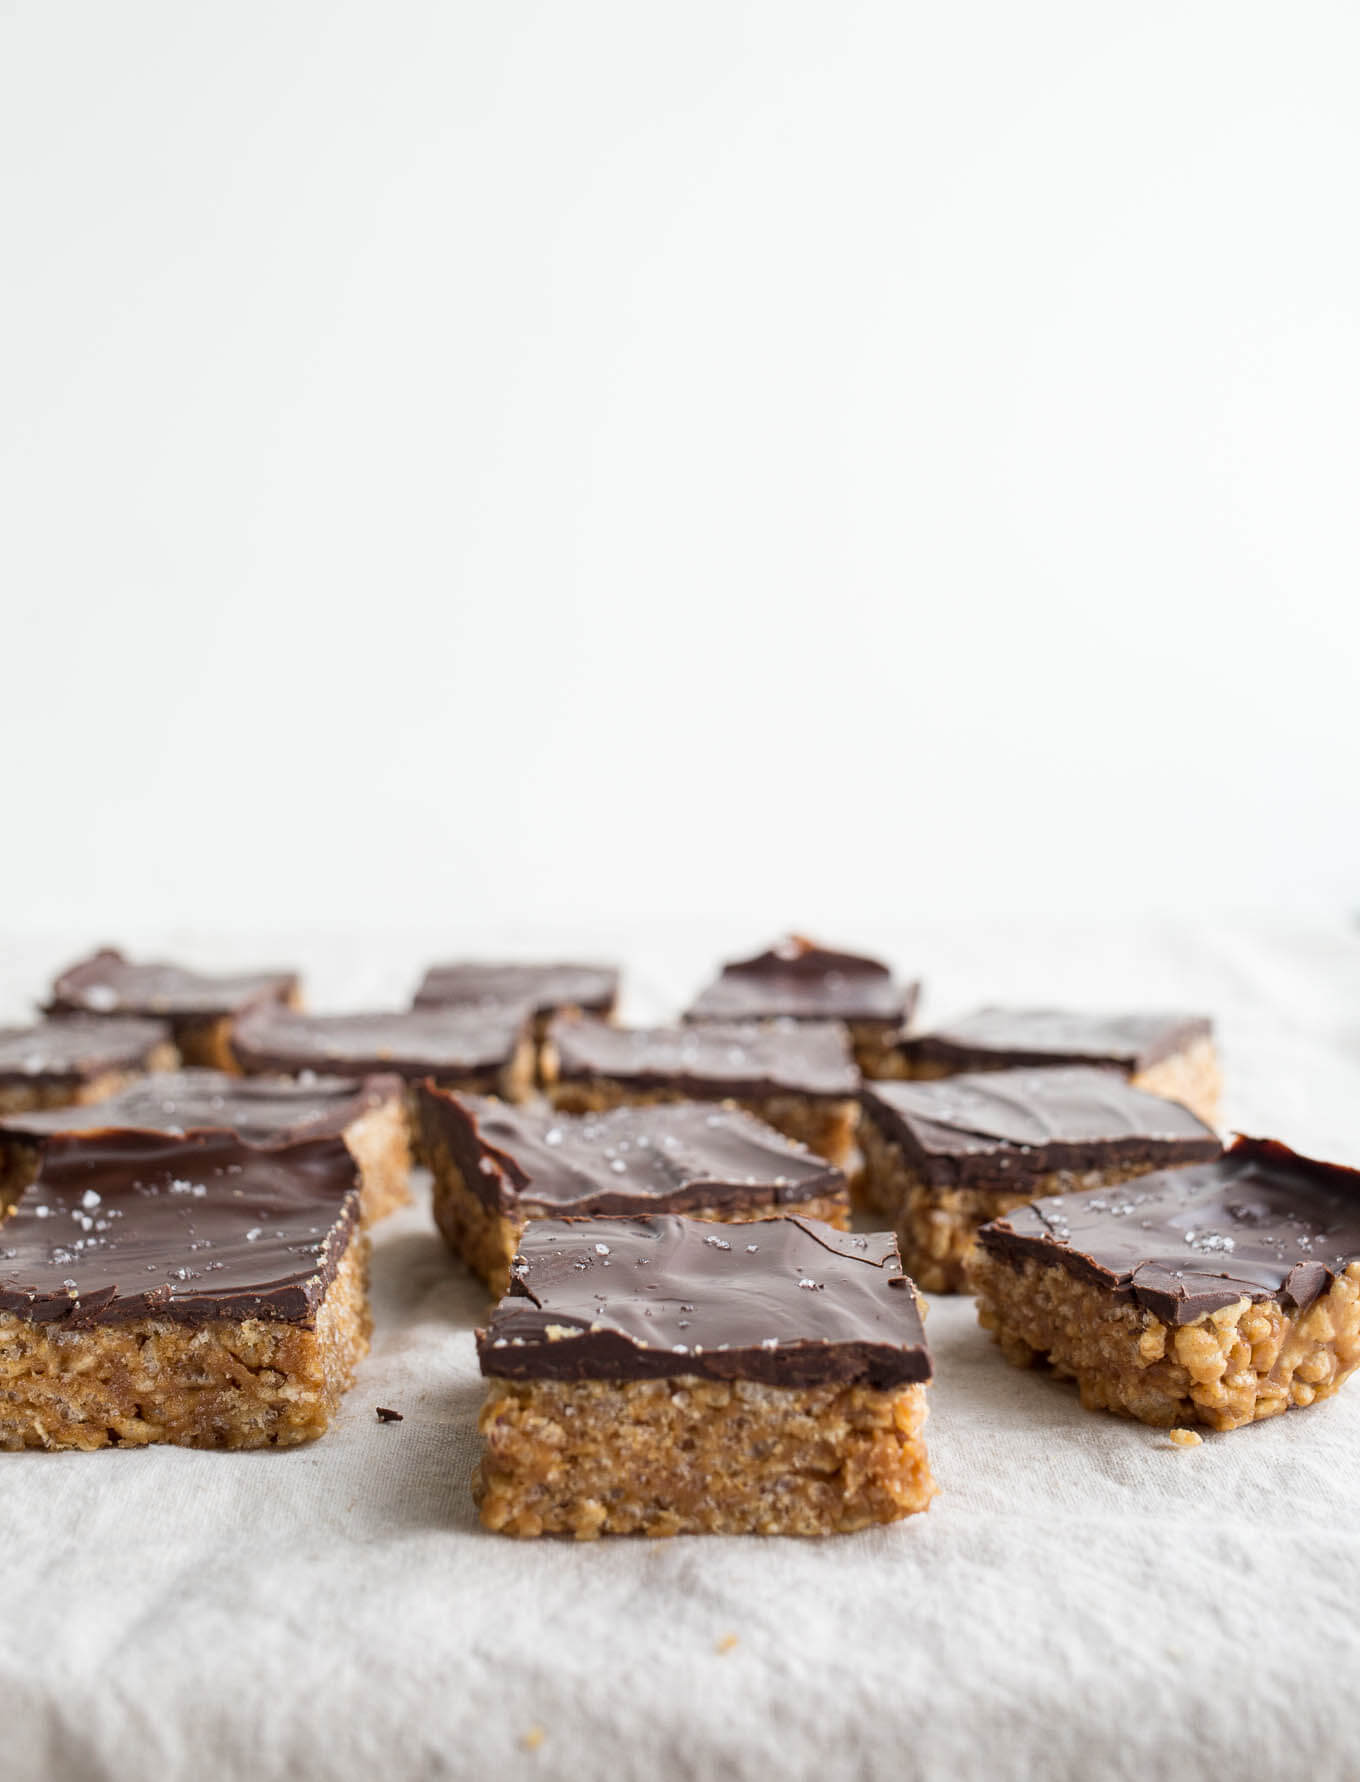 Peanut Butter Maple Scotcheroos are a healthier take on the classic treat. Made with brown rice cereal, peanut butter, maple syrup, and dairy-free chocolate. Gluten-free, vegan, refined sugar-free.